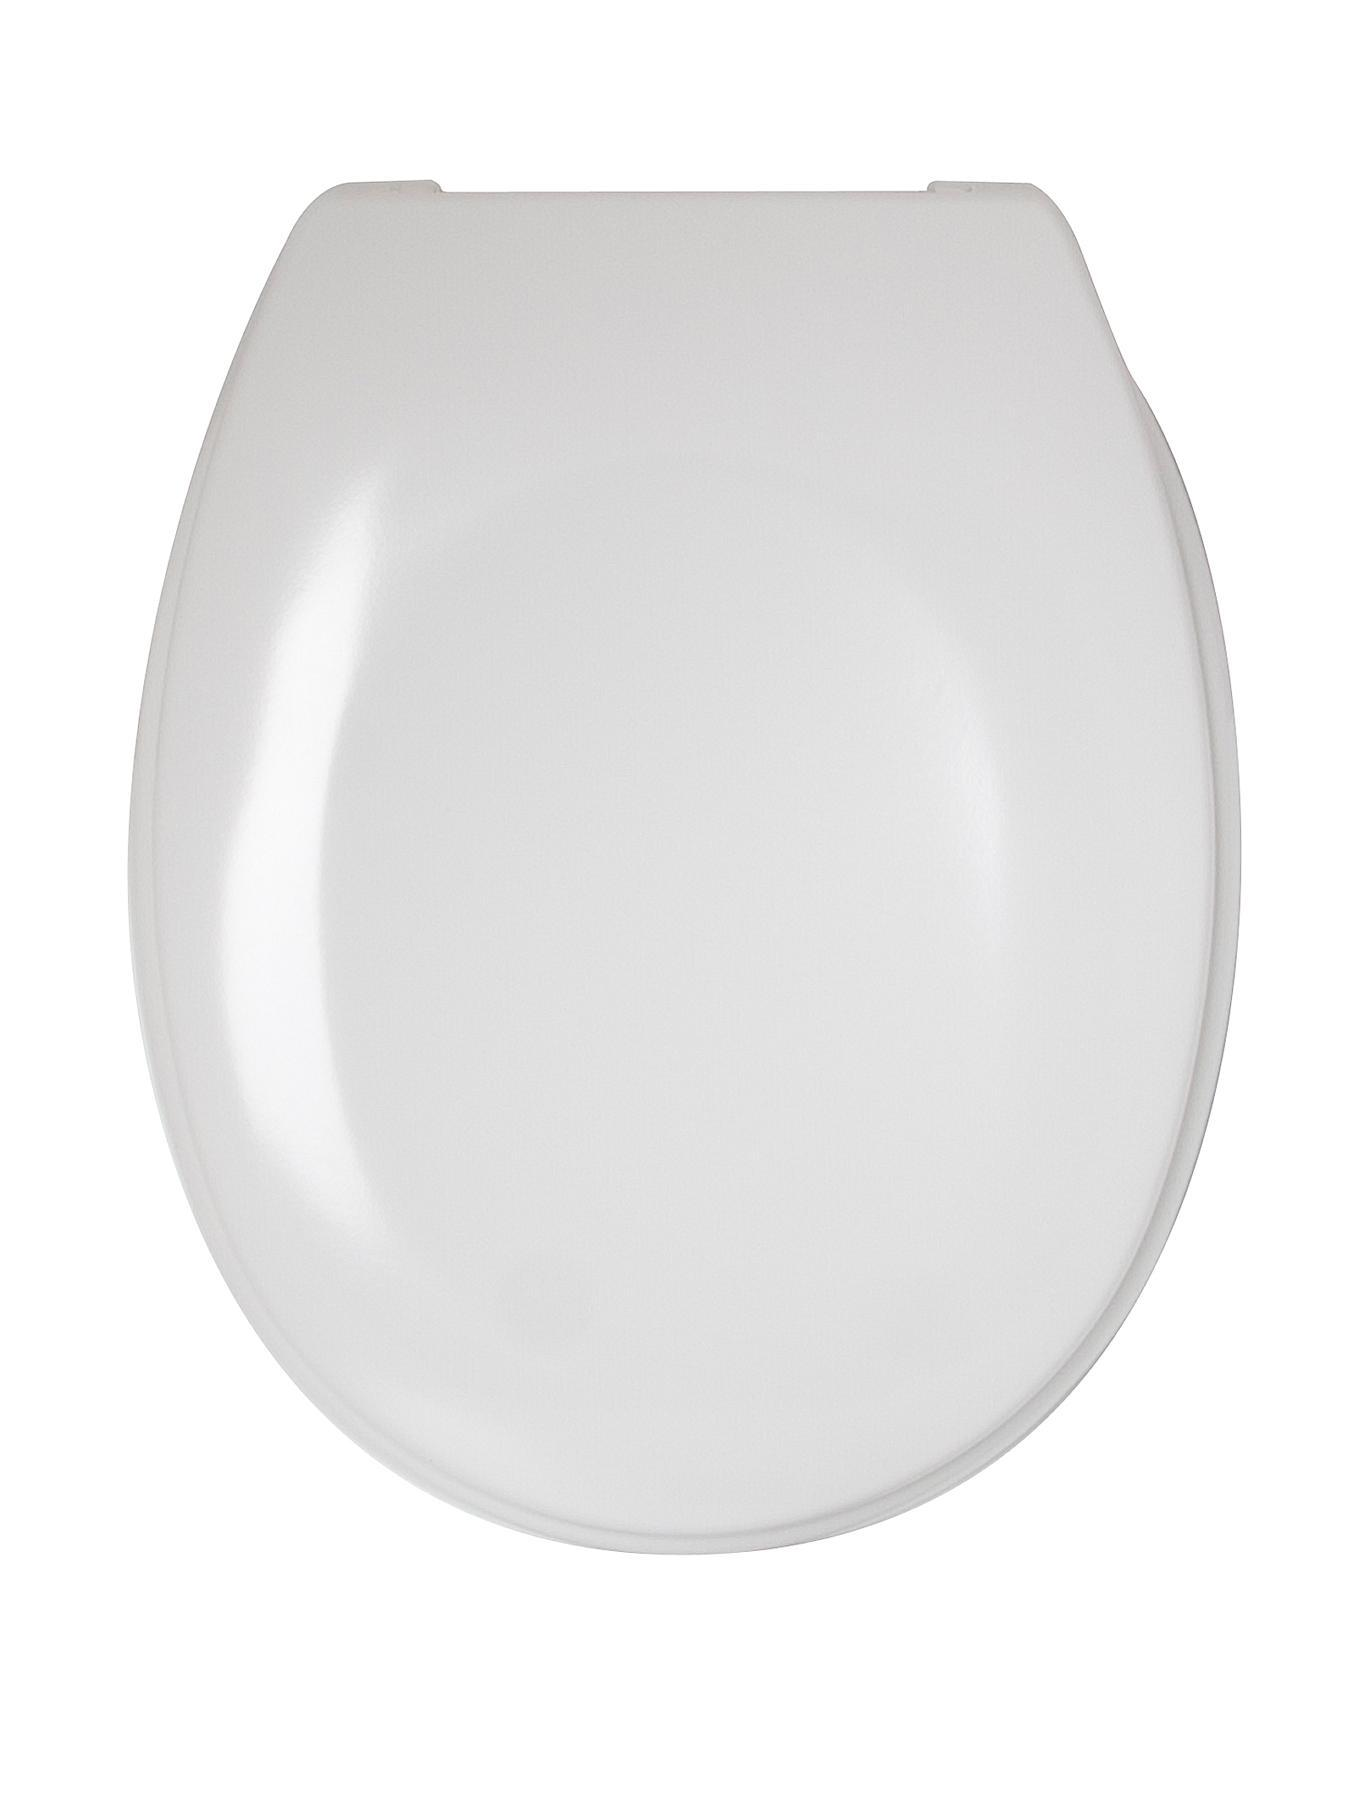 Sabichi Slow Close Wipe Clean Toilet Seat